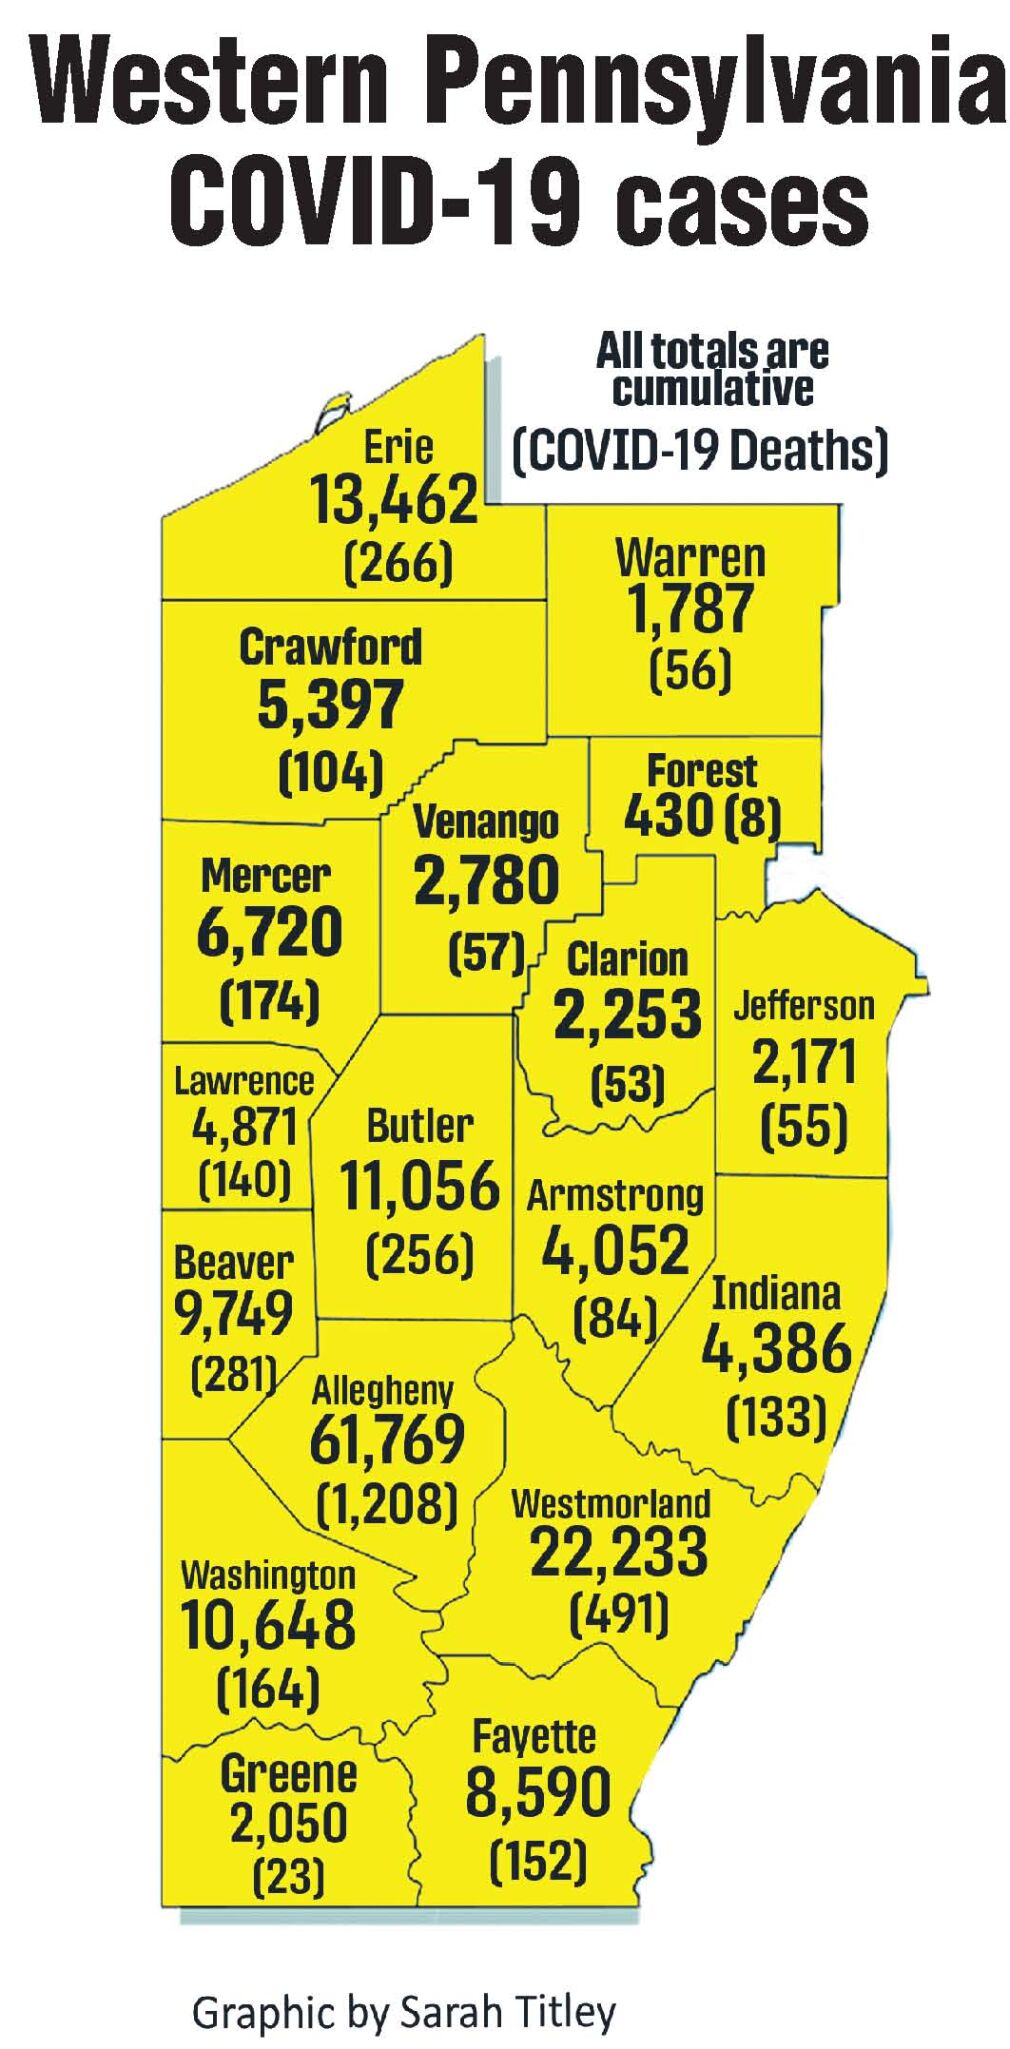 Tri-county again adds 35 cases